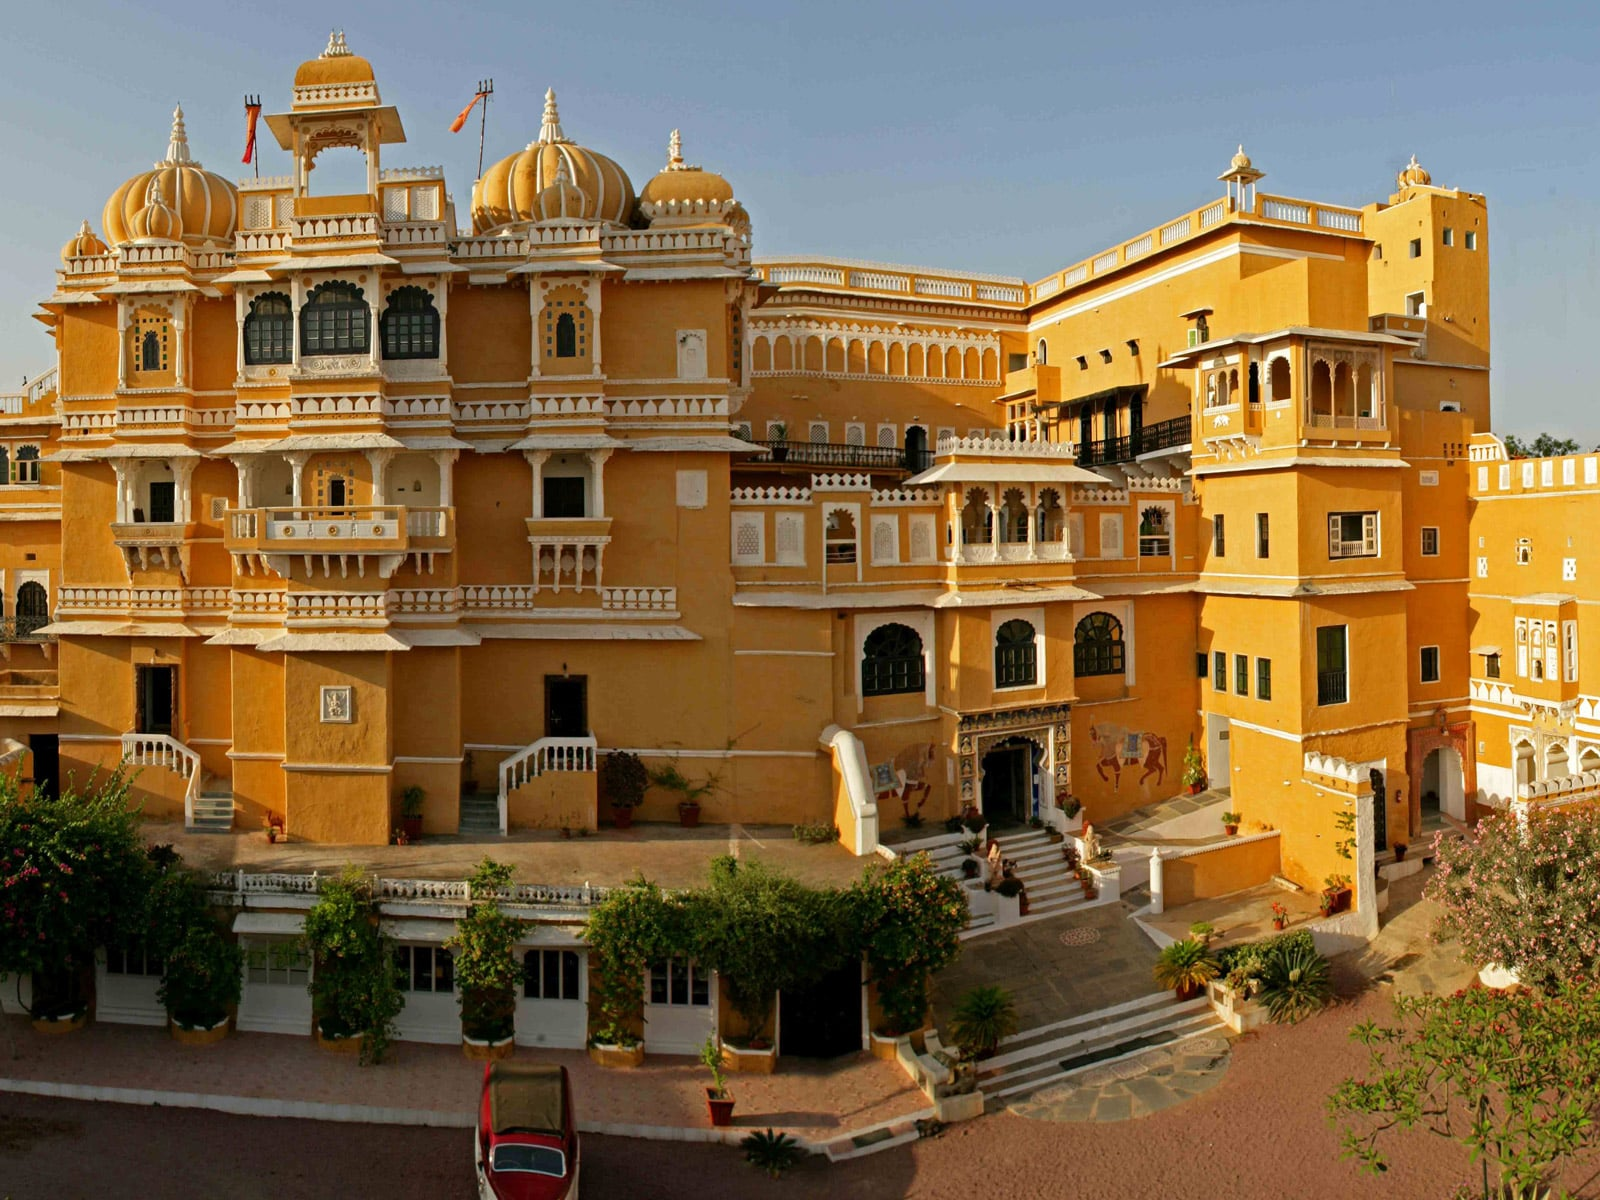 rondreis india deogarh mahal palace 1